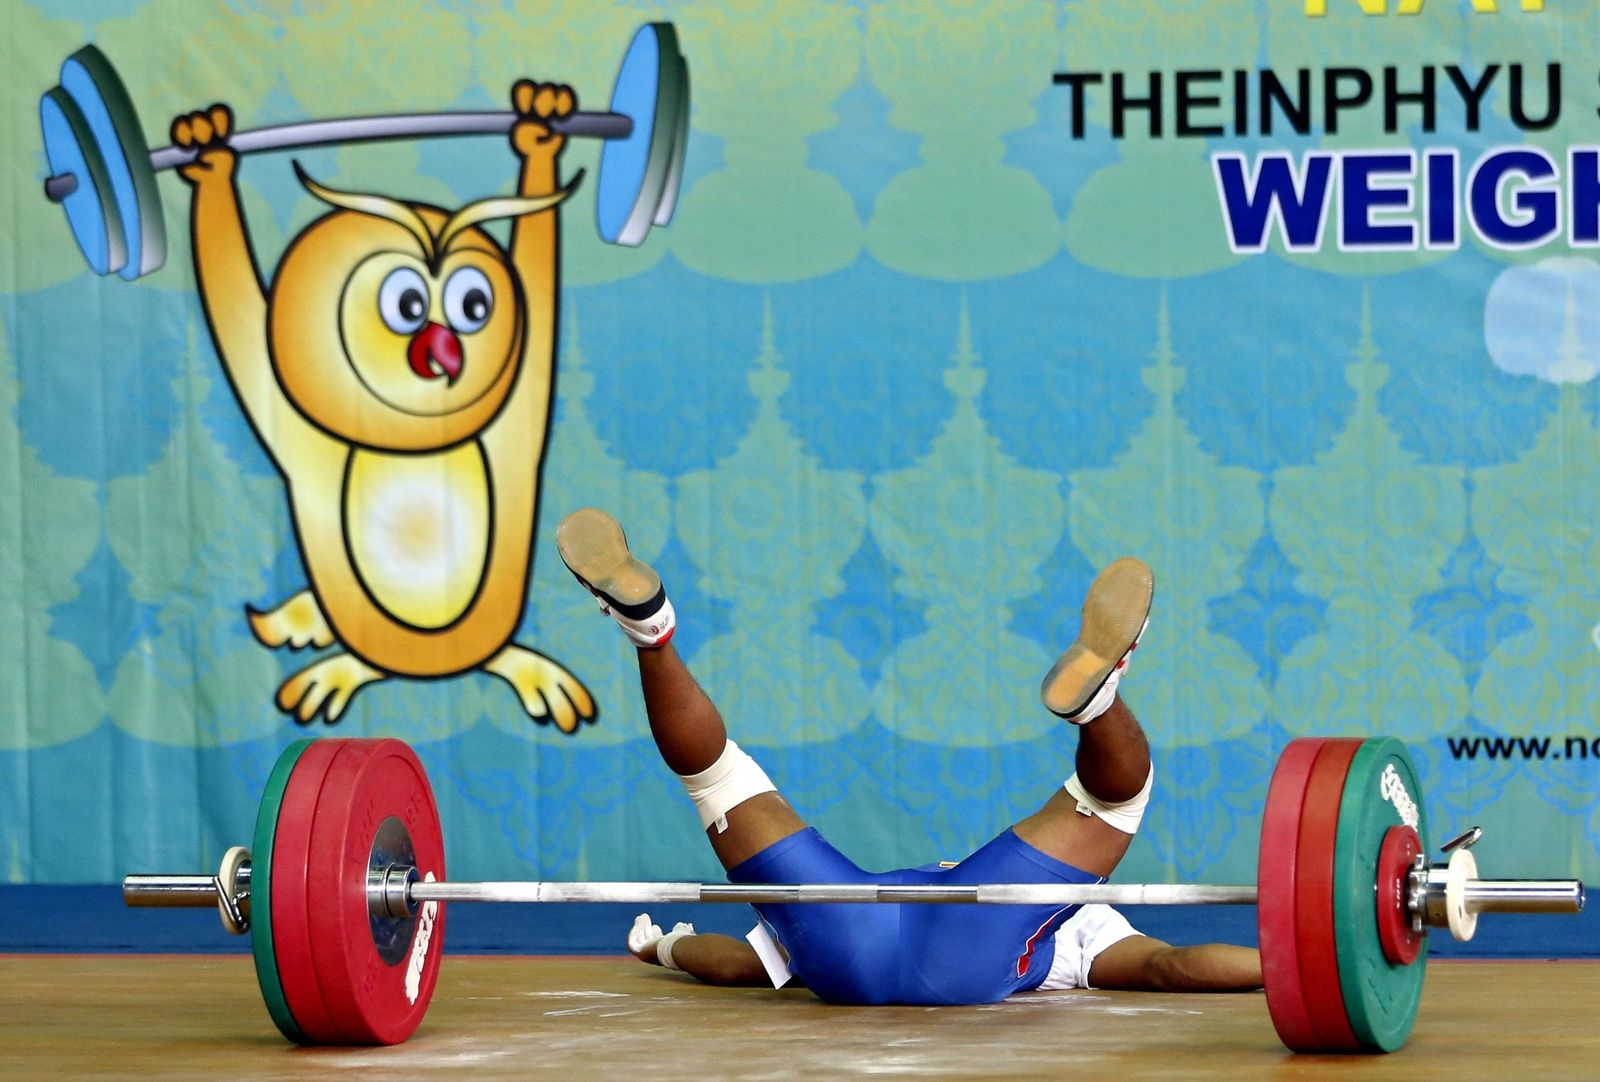 27th Myanmar SEA Games weightlifting tournament